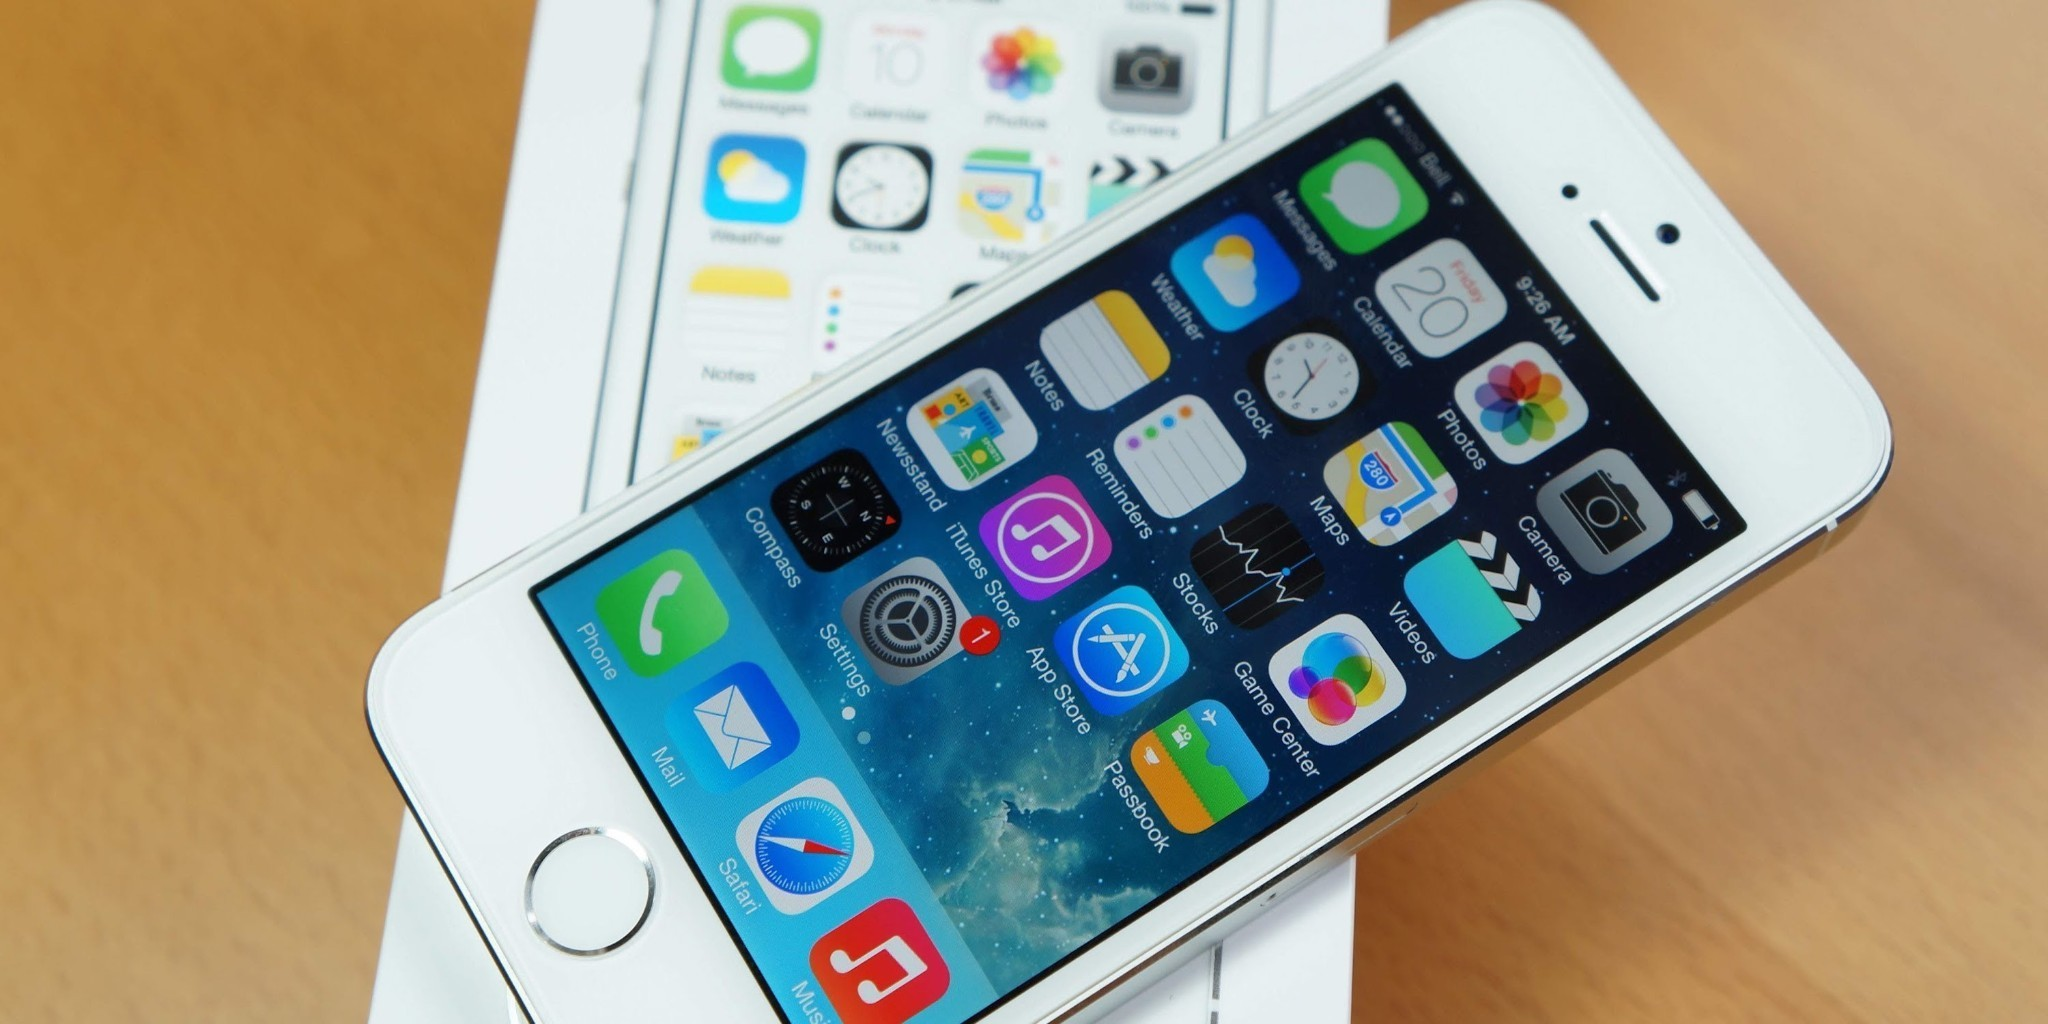 Apple likely to drop the '5', call new 4-inch model the 'iPhone SE'